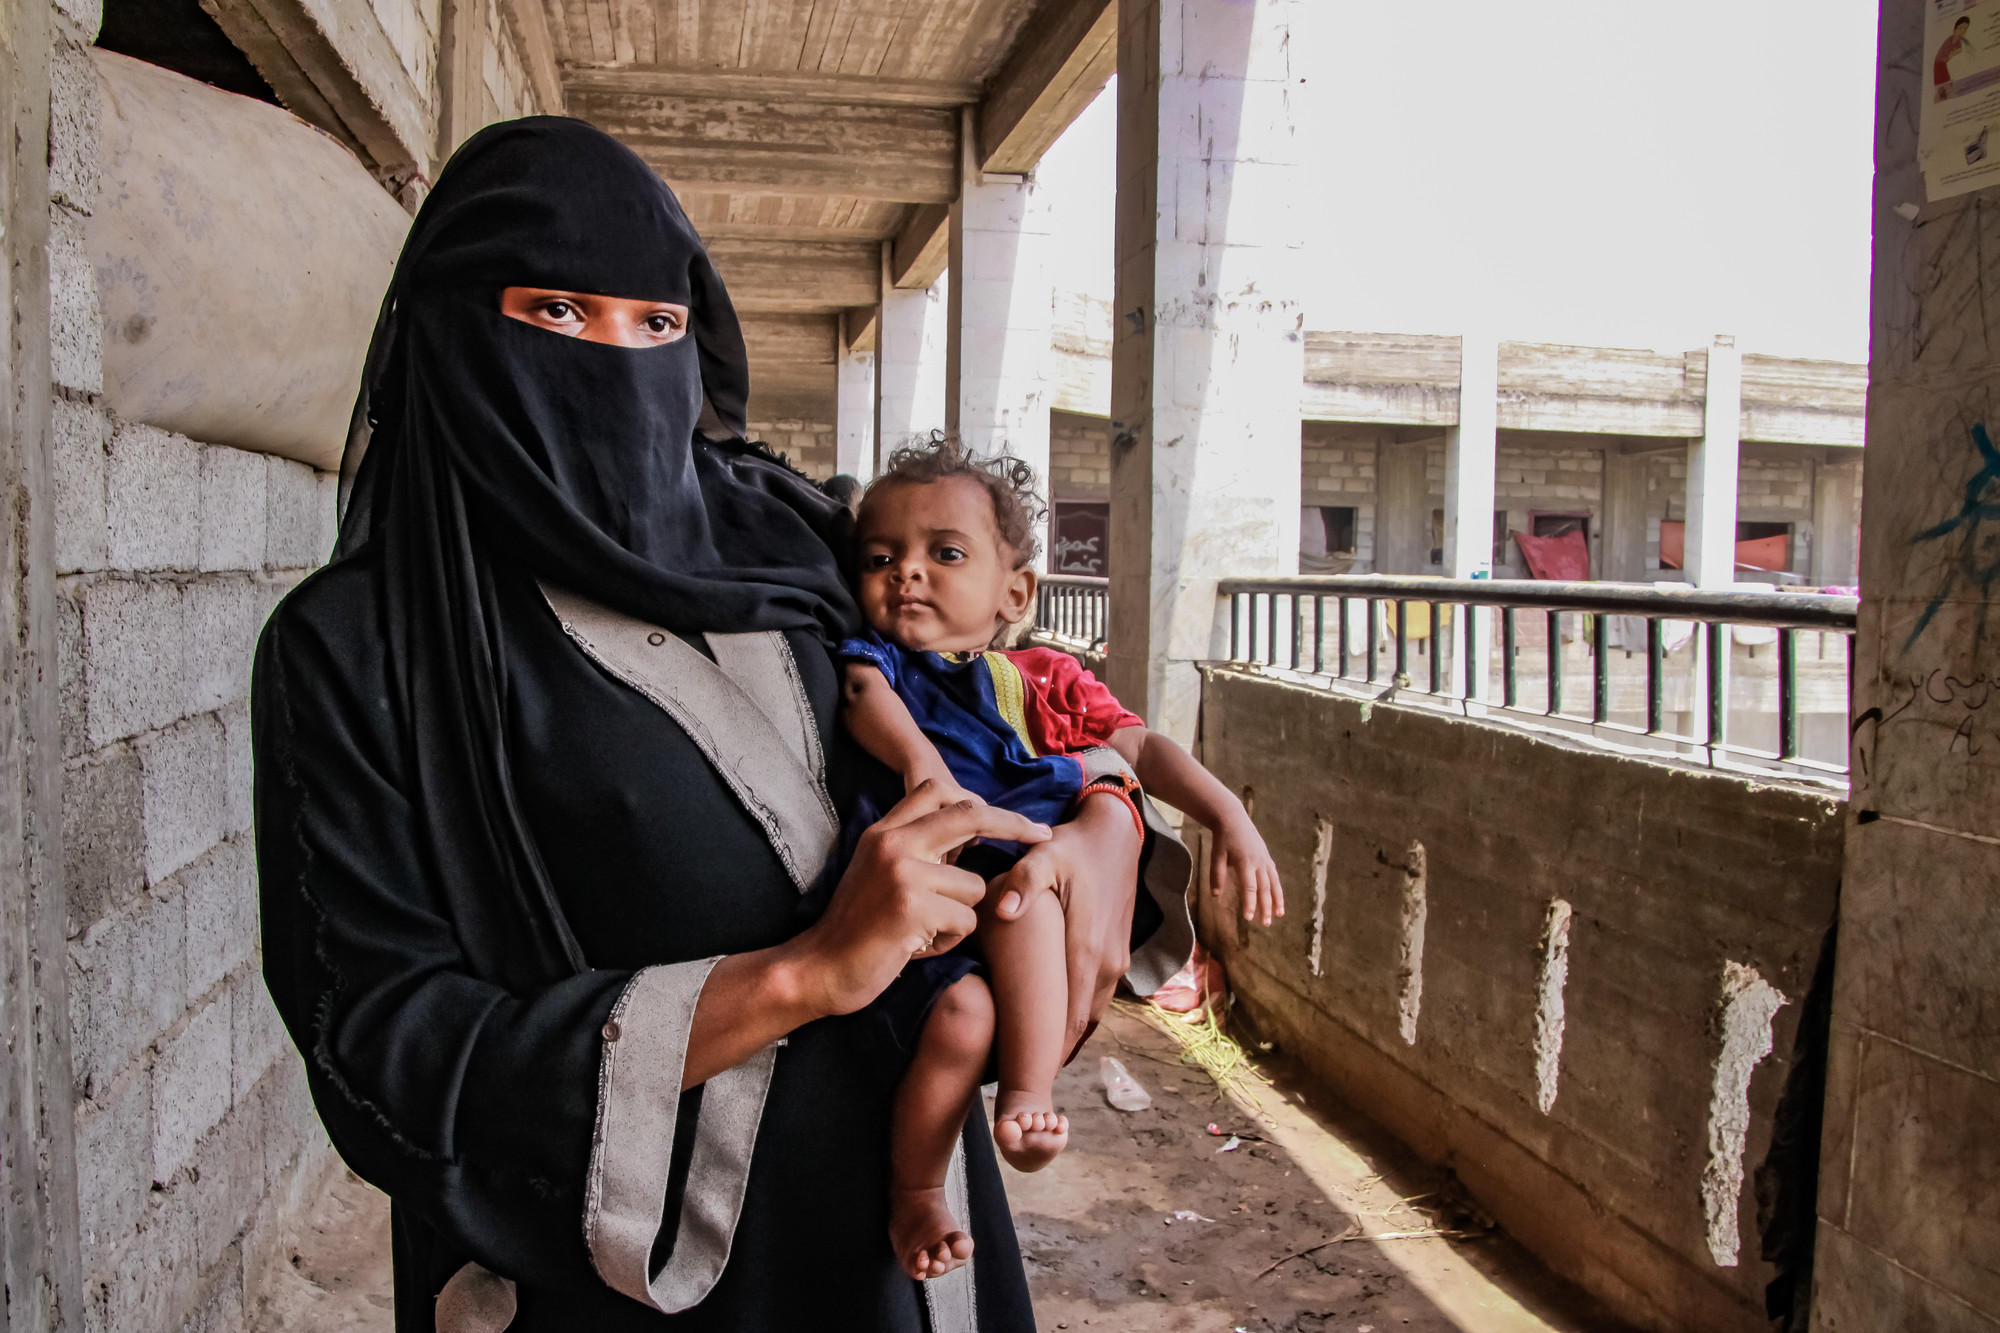 A woman holds a baby while standing near a balcony.